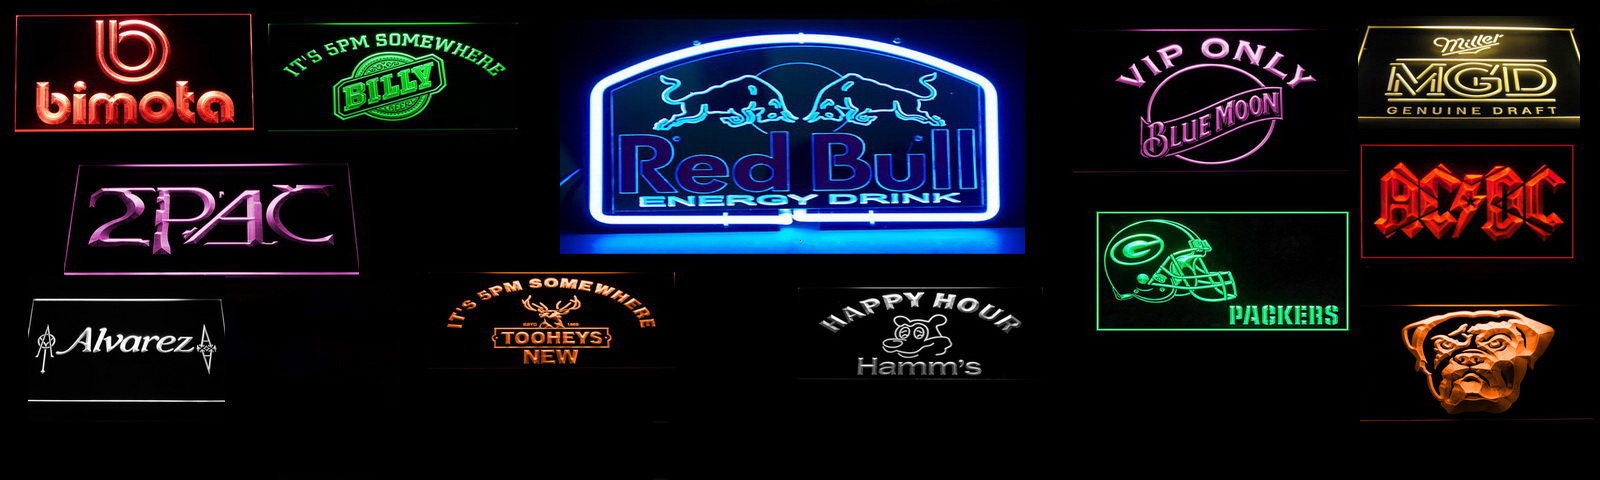 Ultra Bright LED & Neon Signs